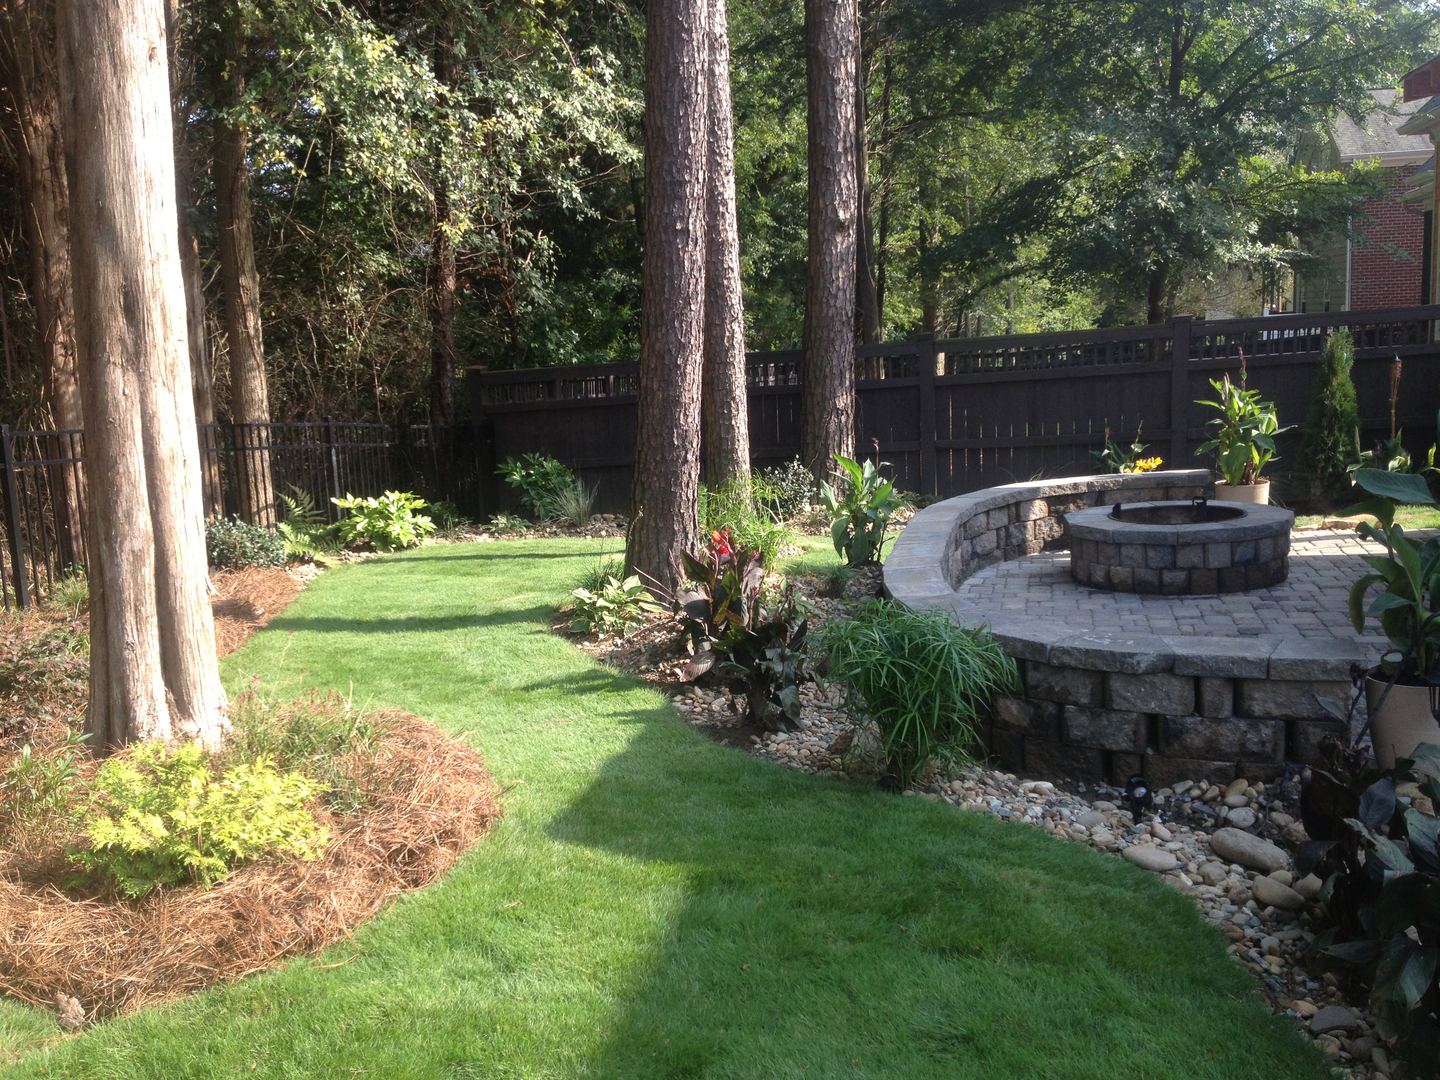 Top landscapers in charlotte nc - Our Landscaping